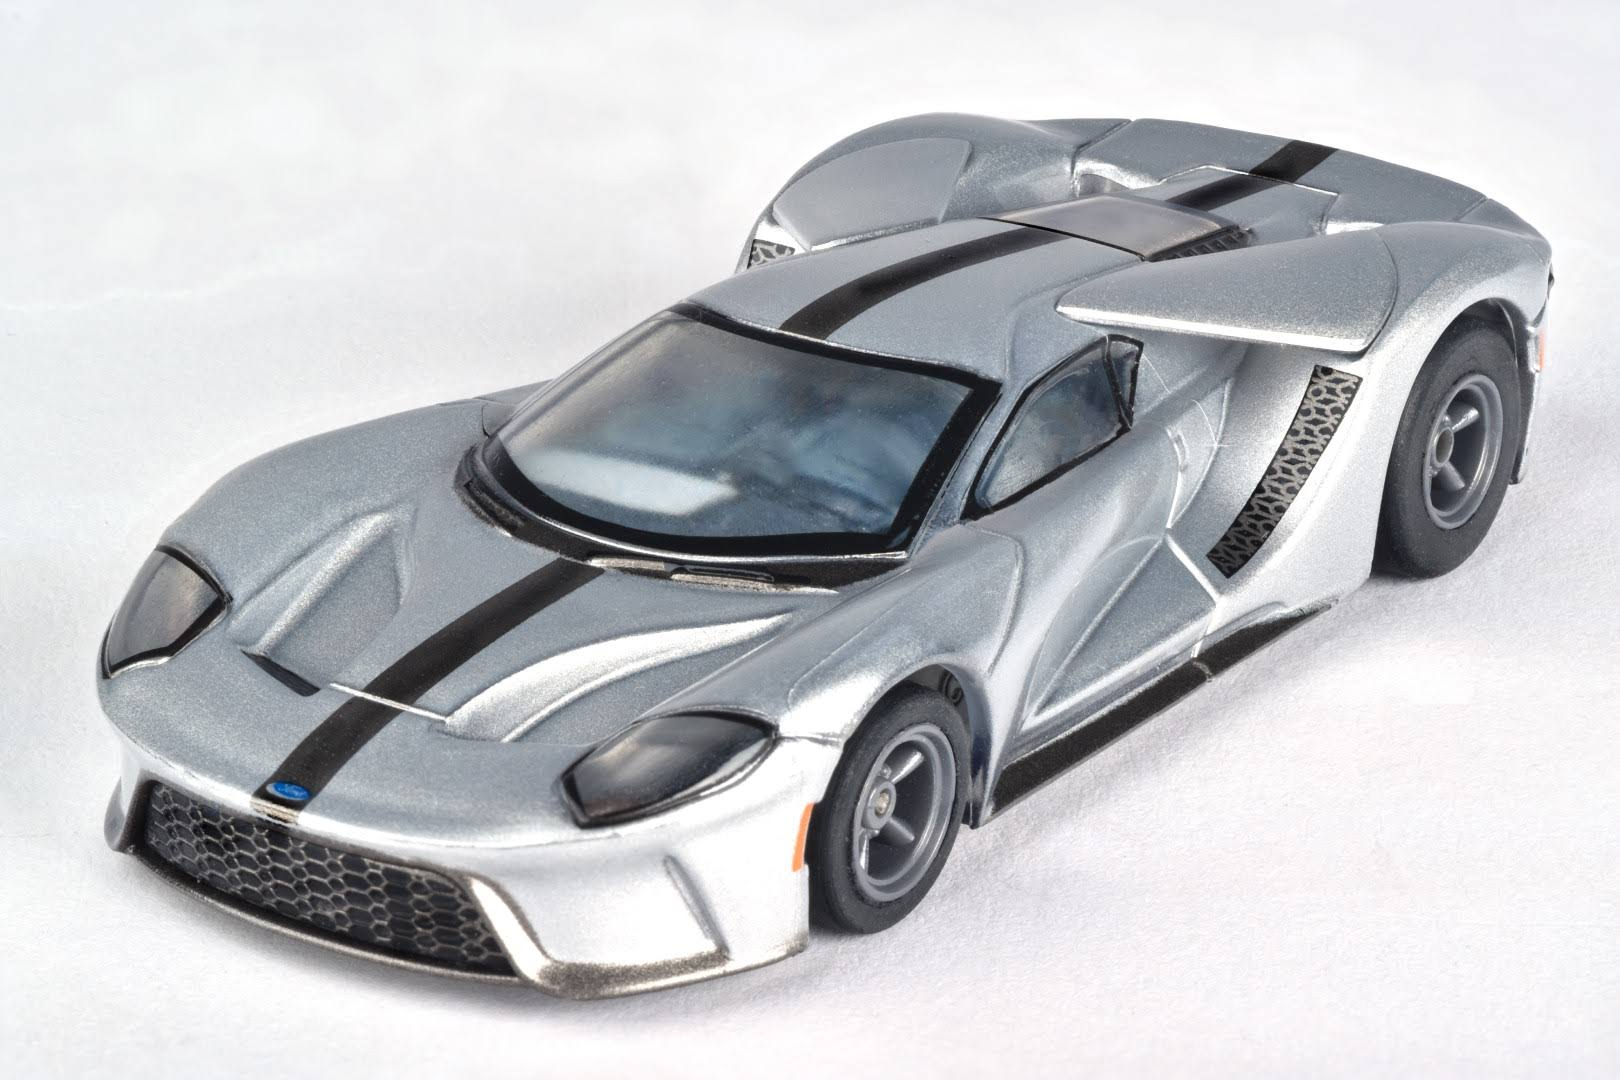 AFX HO Slot Car - Ford GT Silver/Black